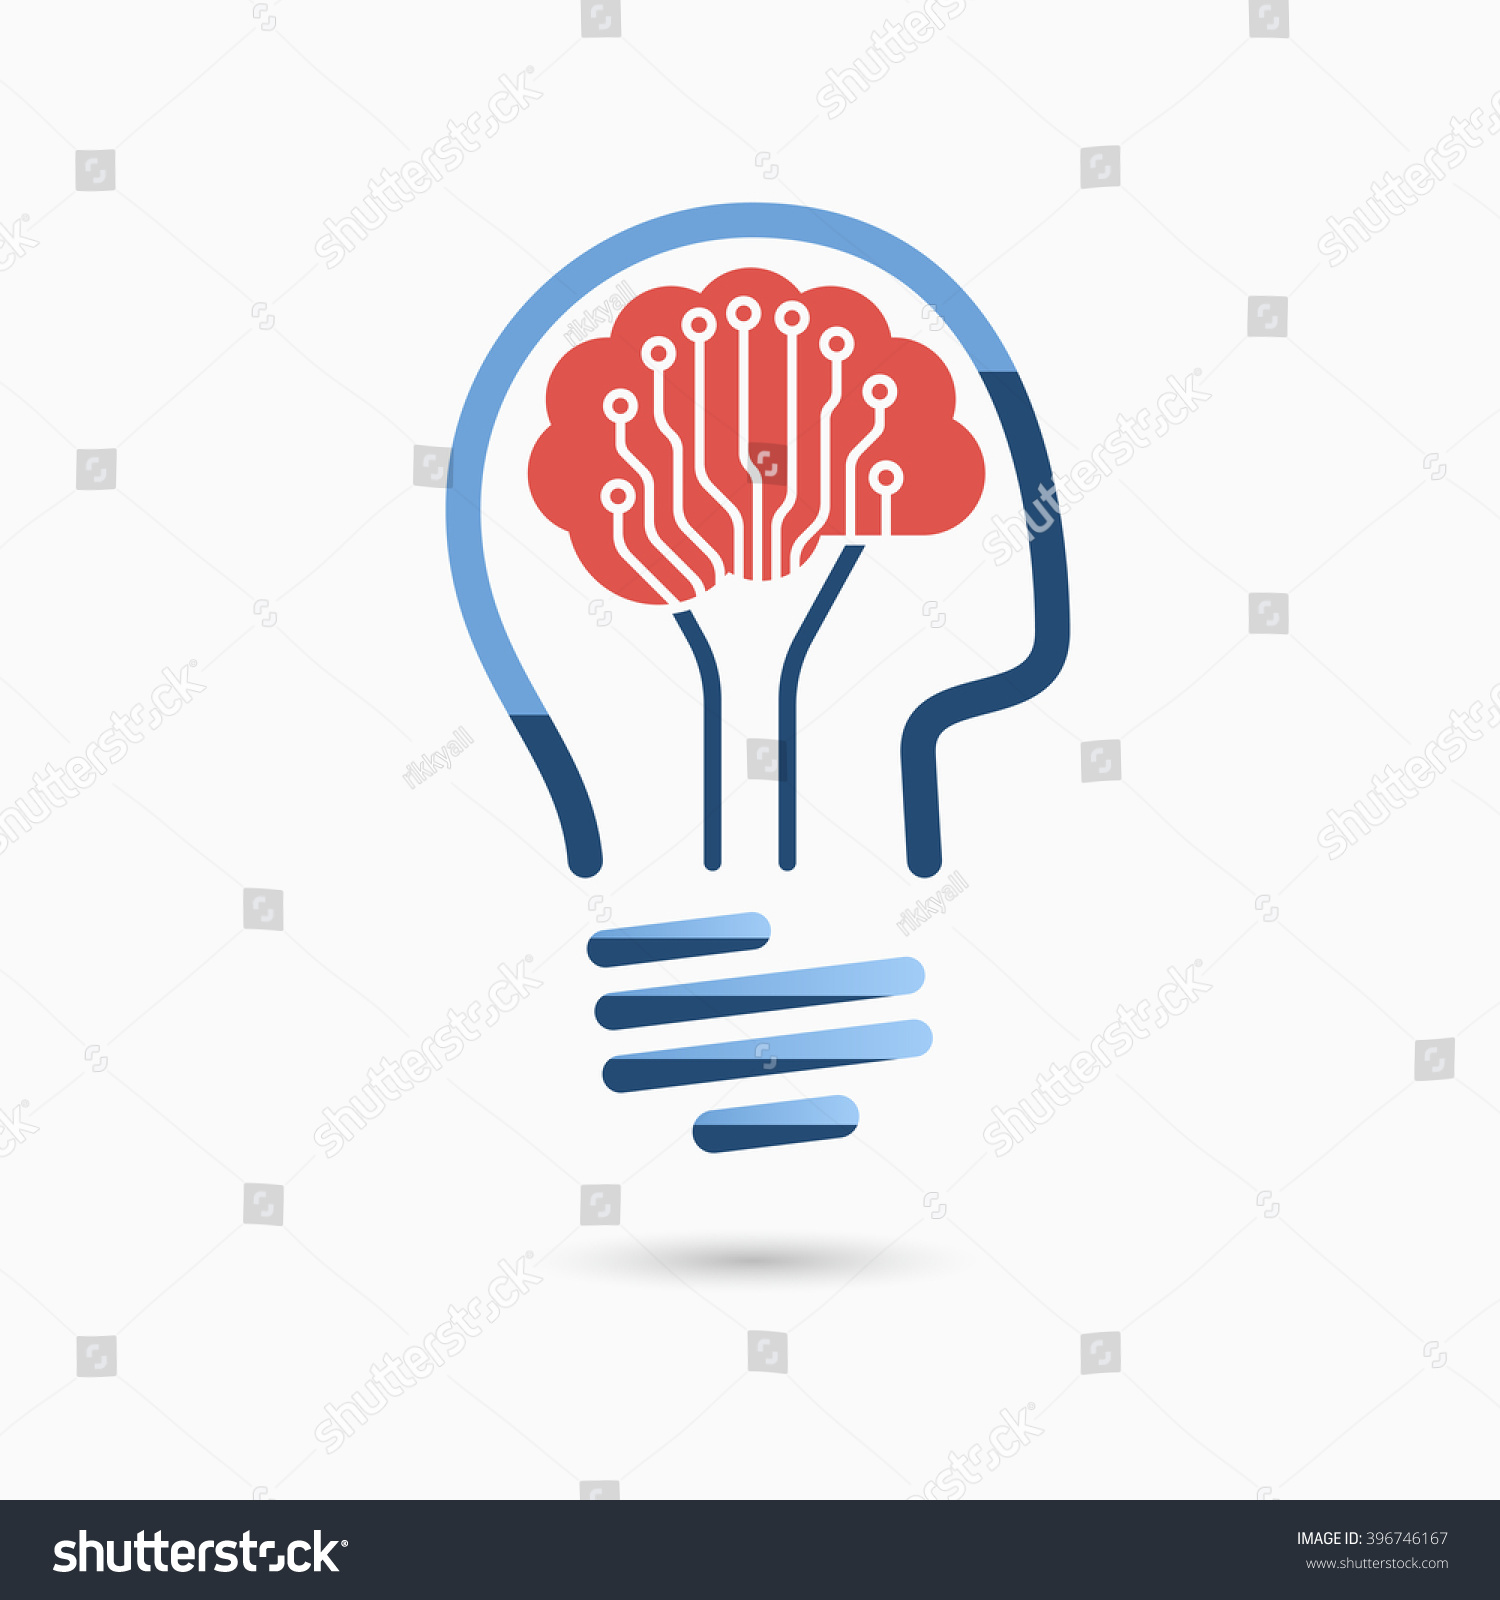 Light Bulb Idea Icon Brain Circuit Stock Vector Royalty Free Boards With Clock Hands Image And Board Business Concept